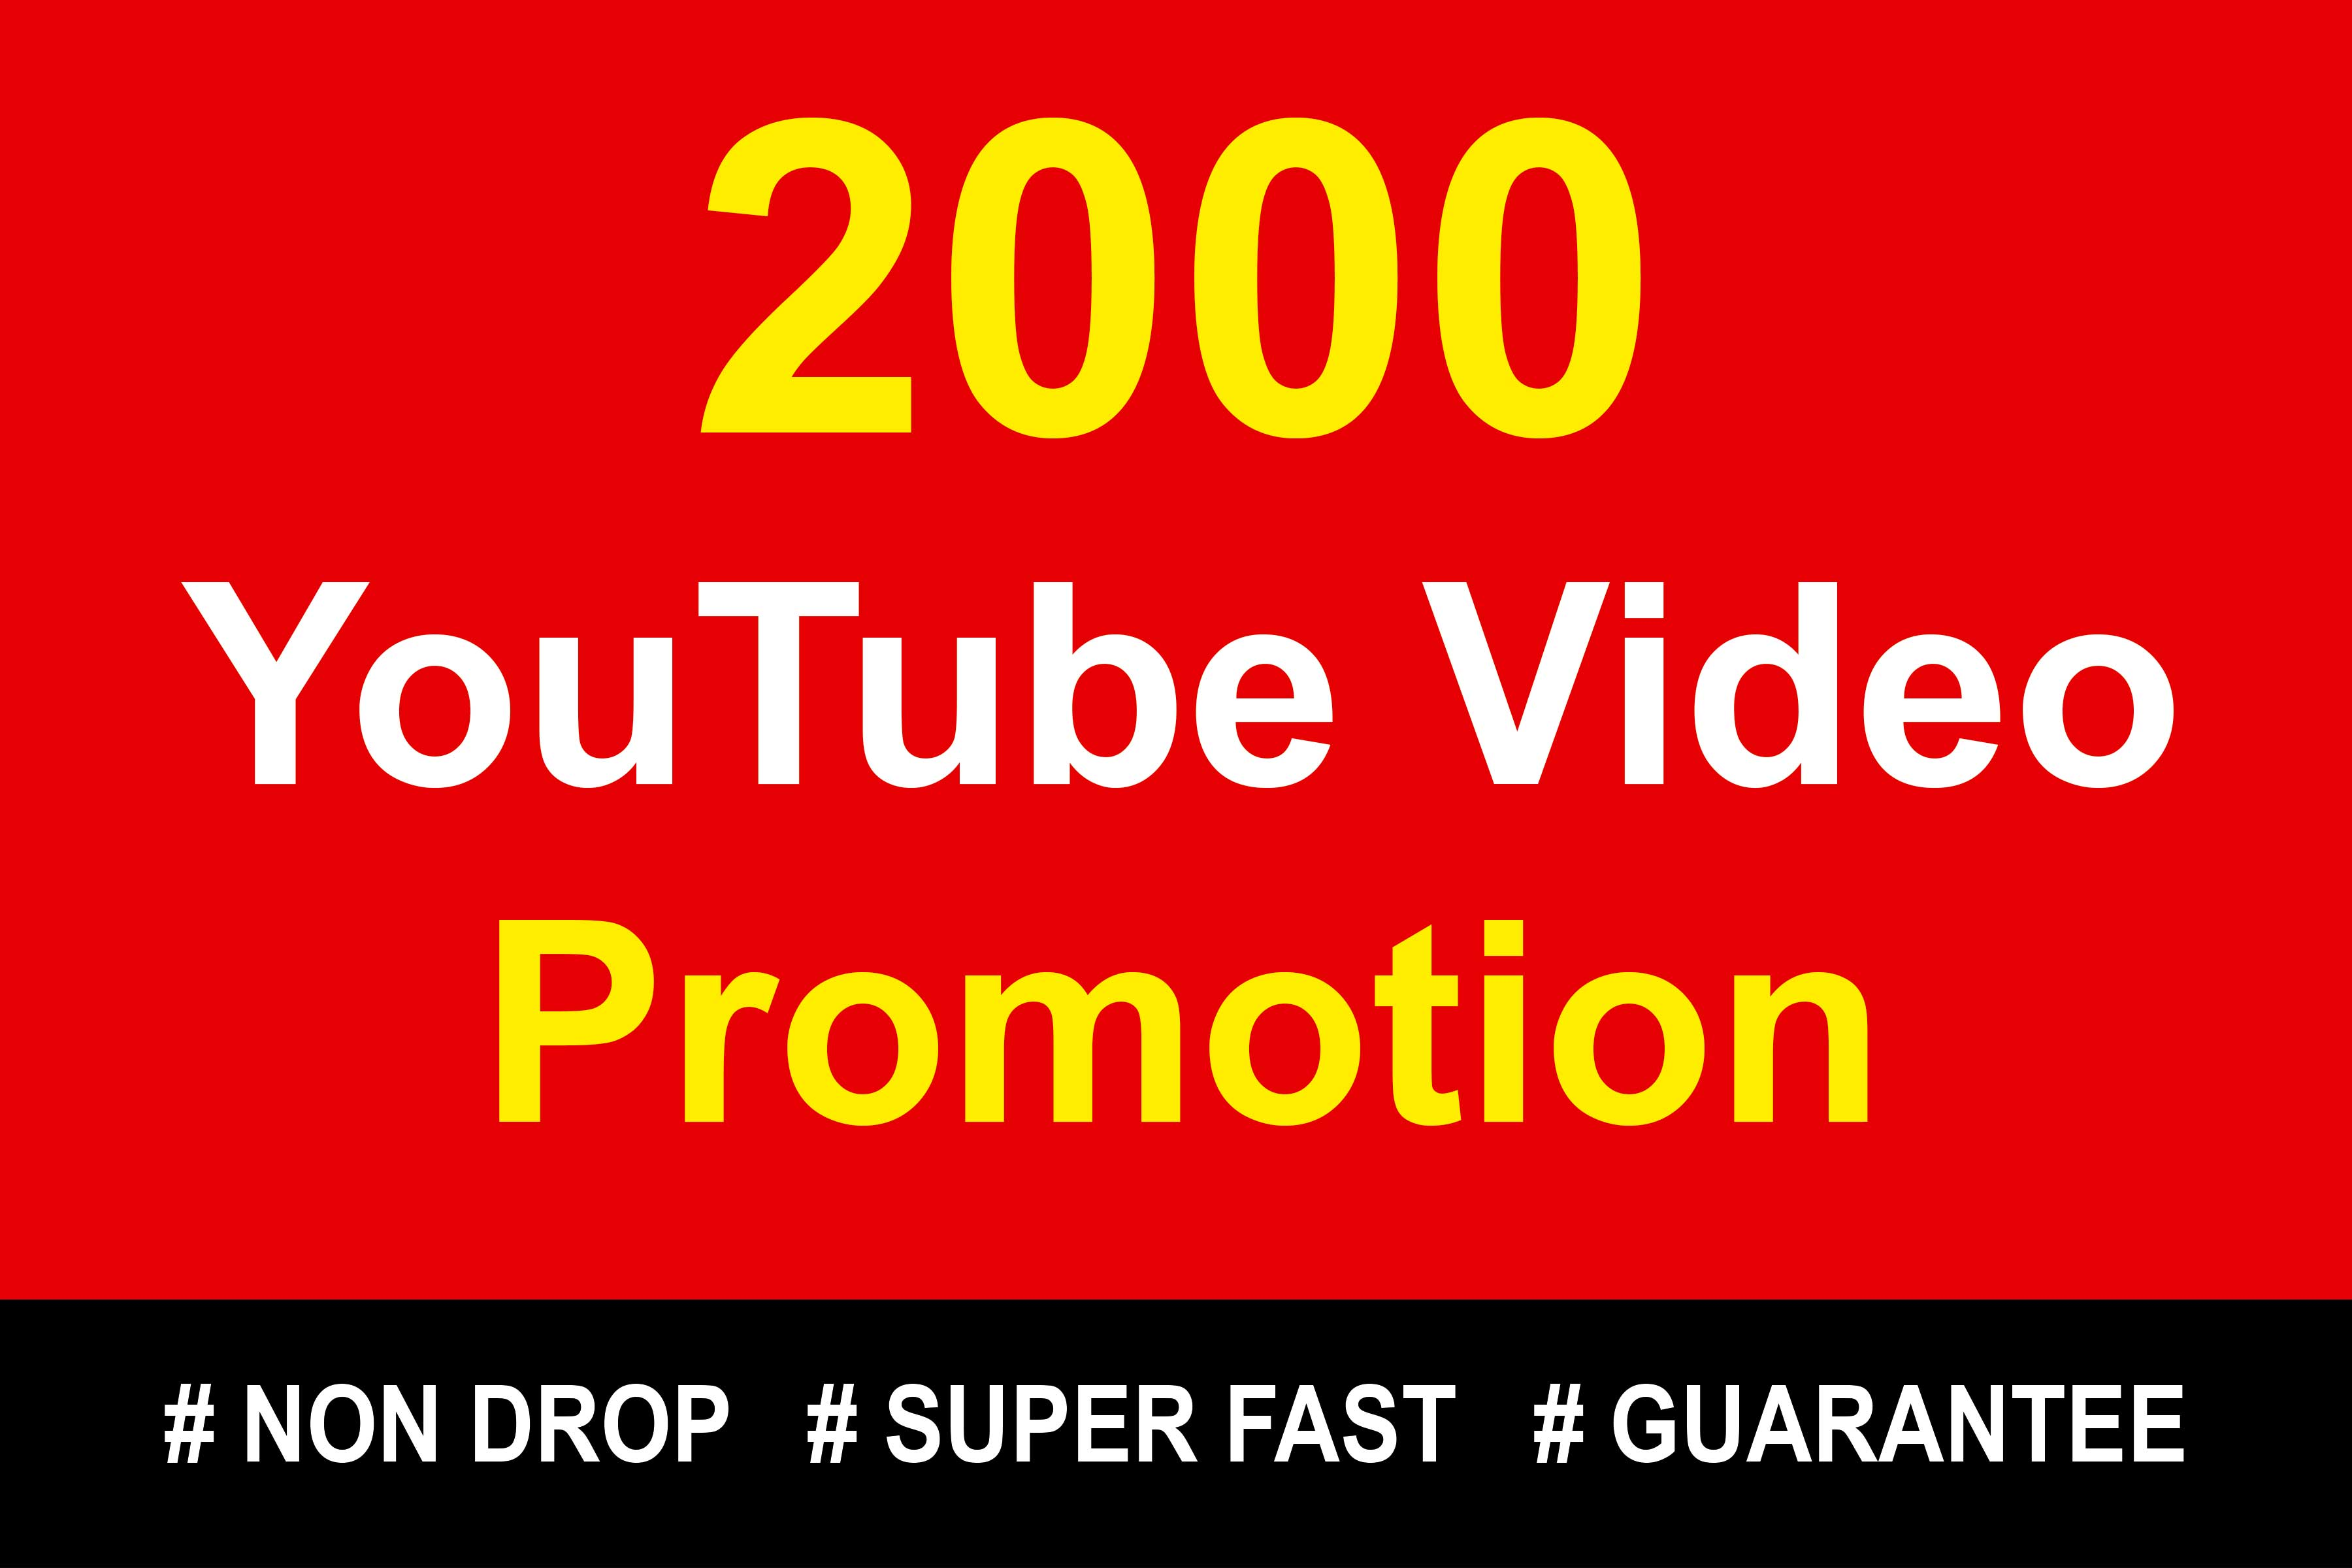 Organic High Quality YouTube Video Promotions High Speed